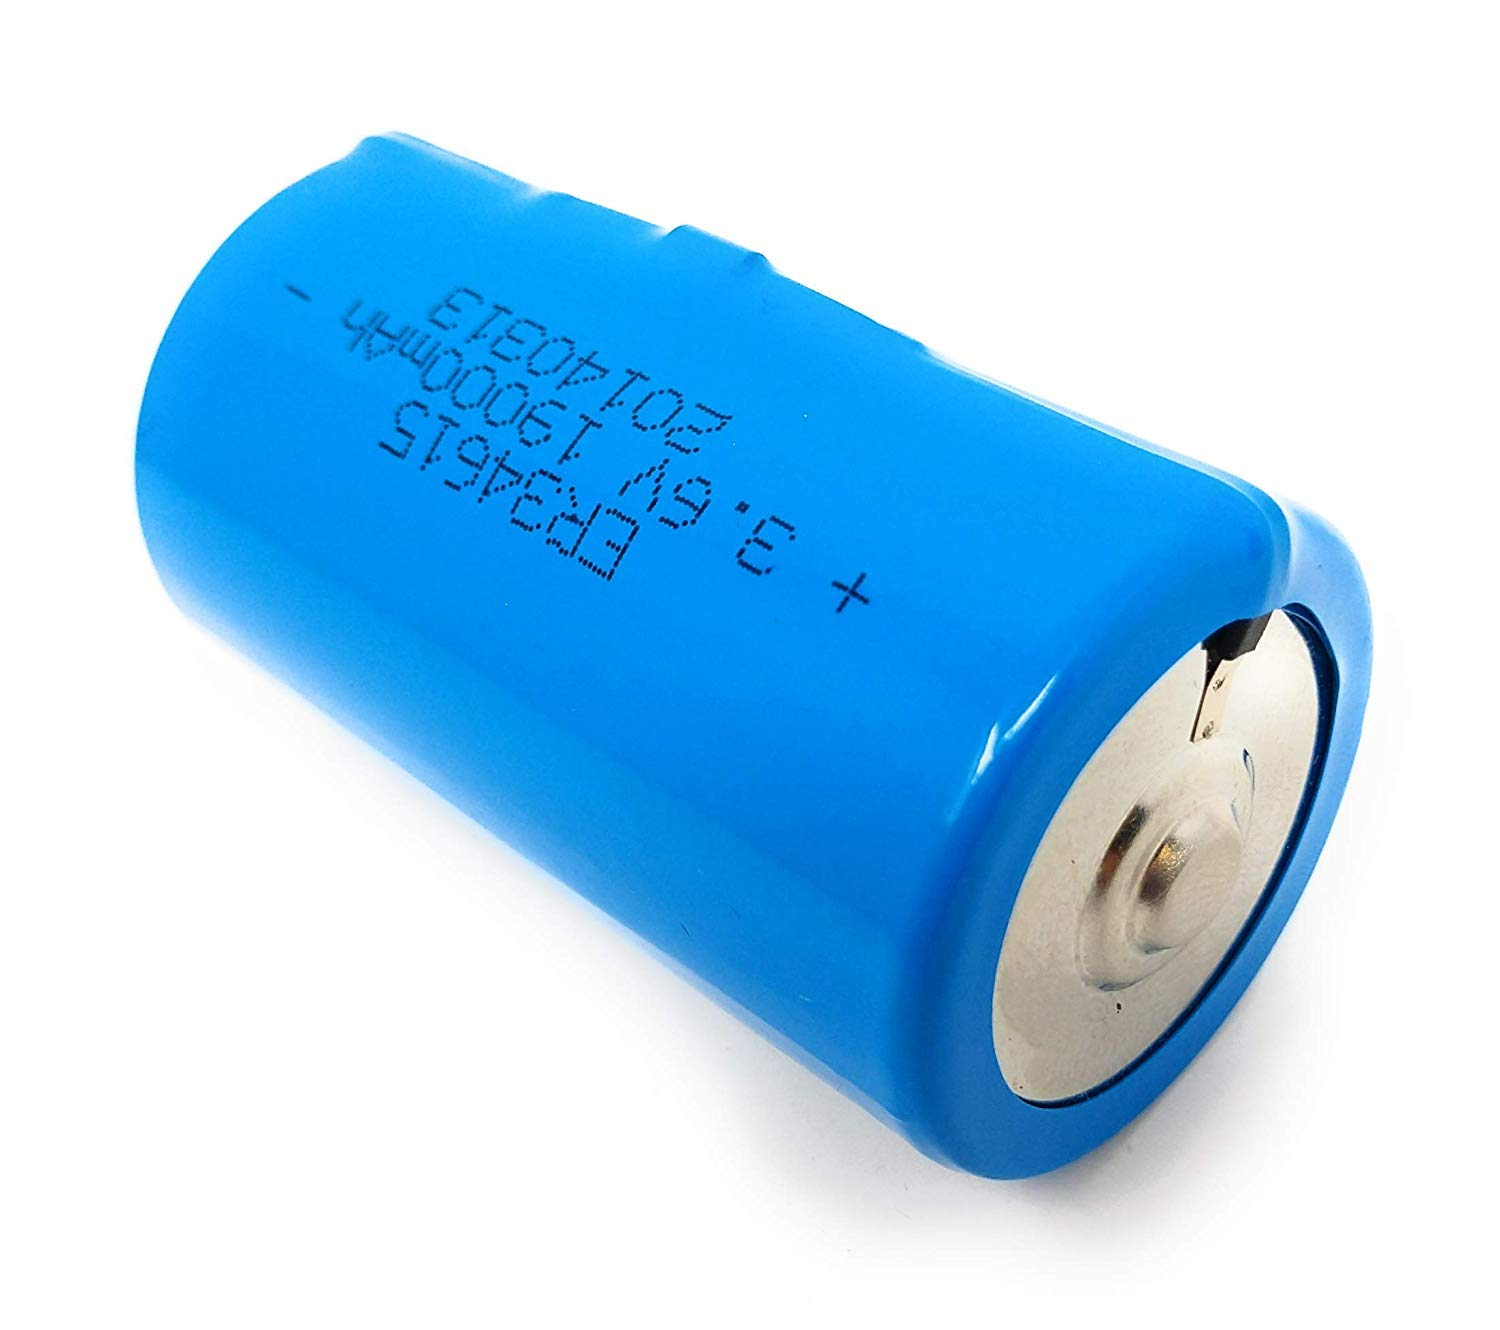 3.6V D Cell 19000mAh ER34615 Li-Socl2 Lithium Battery, 19 Ah D Size (36 pcs) by worldwidetraders (Image #1)